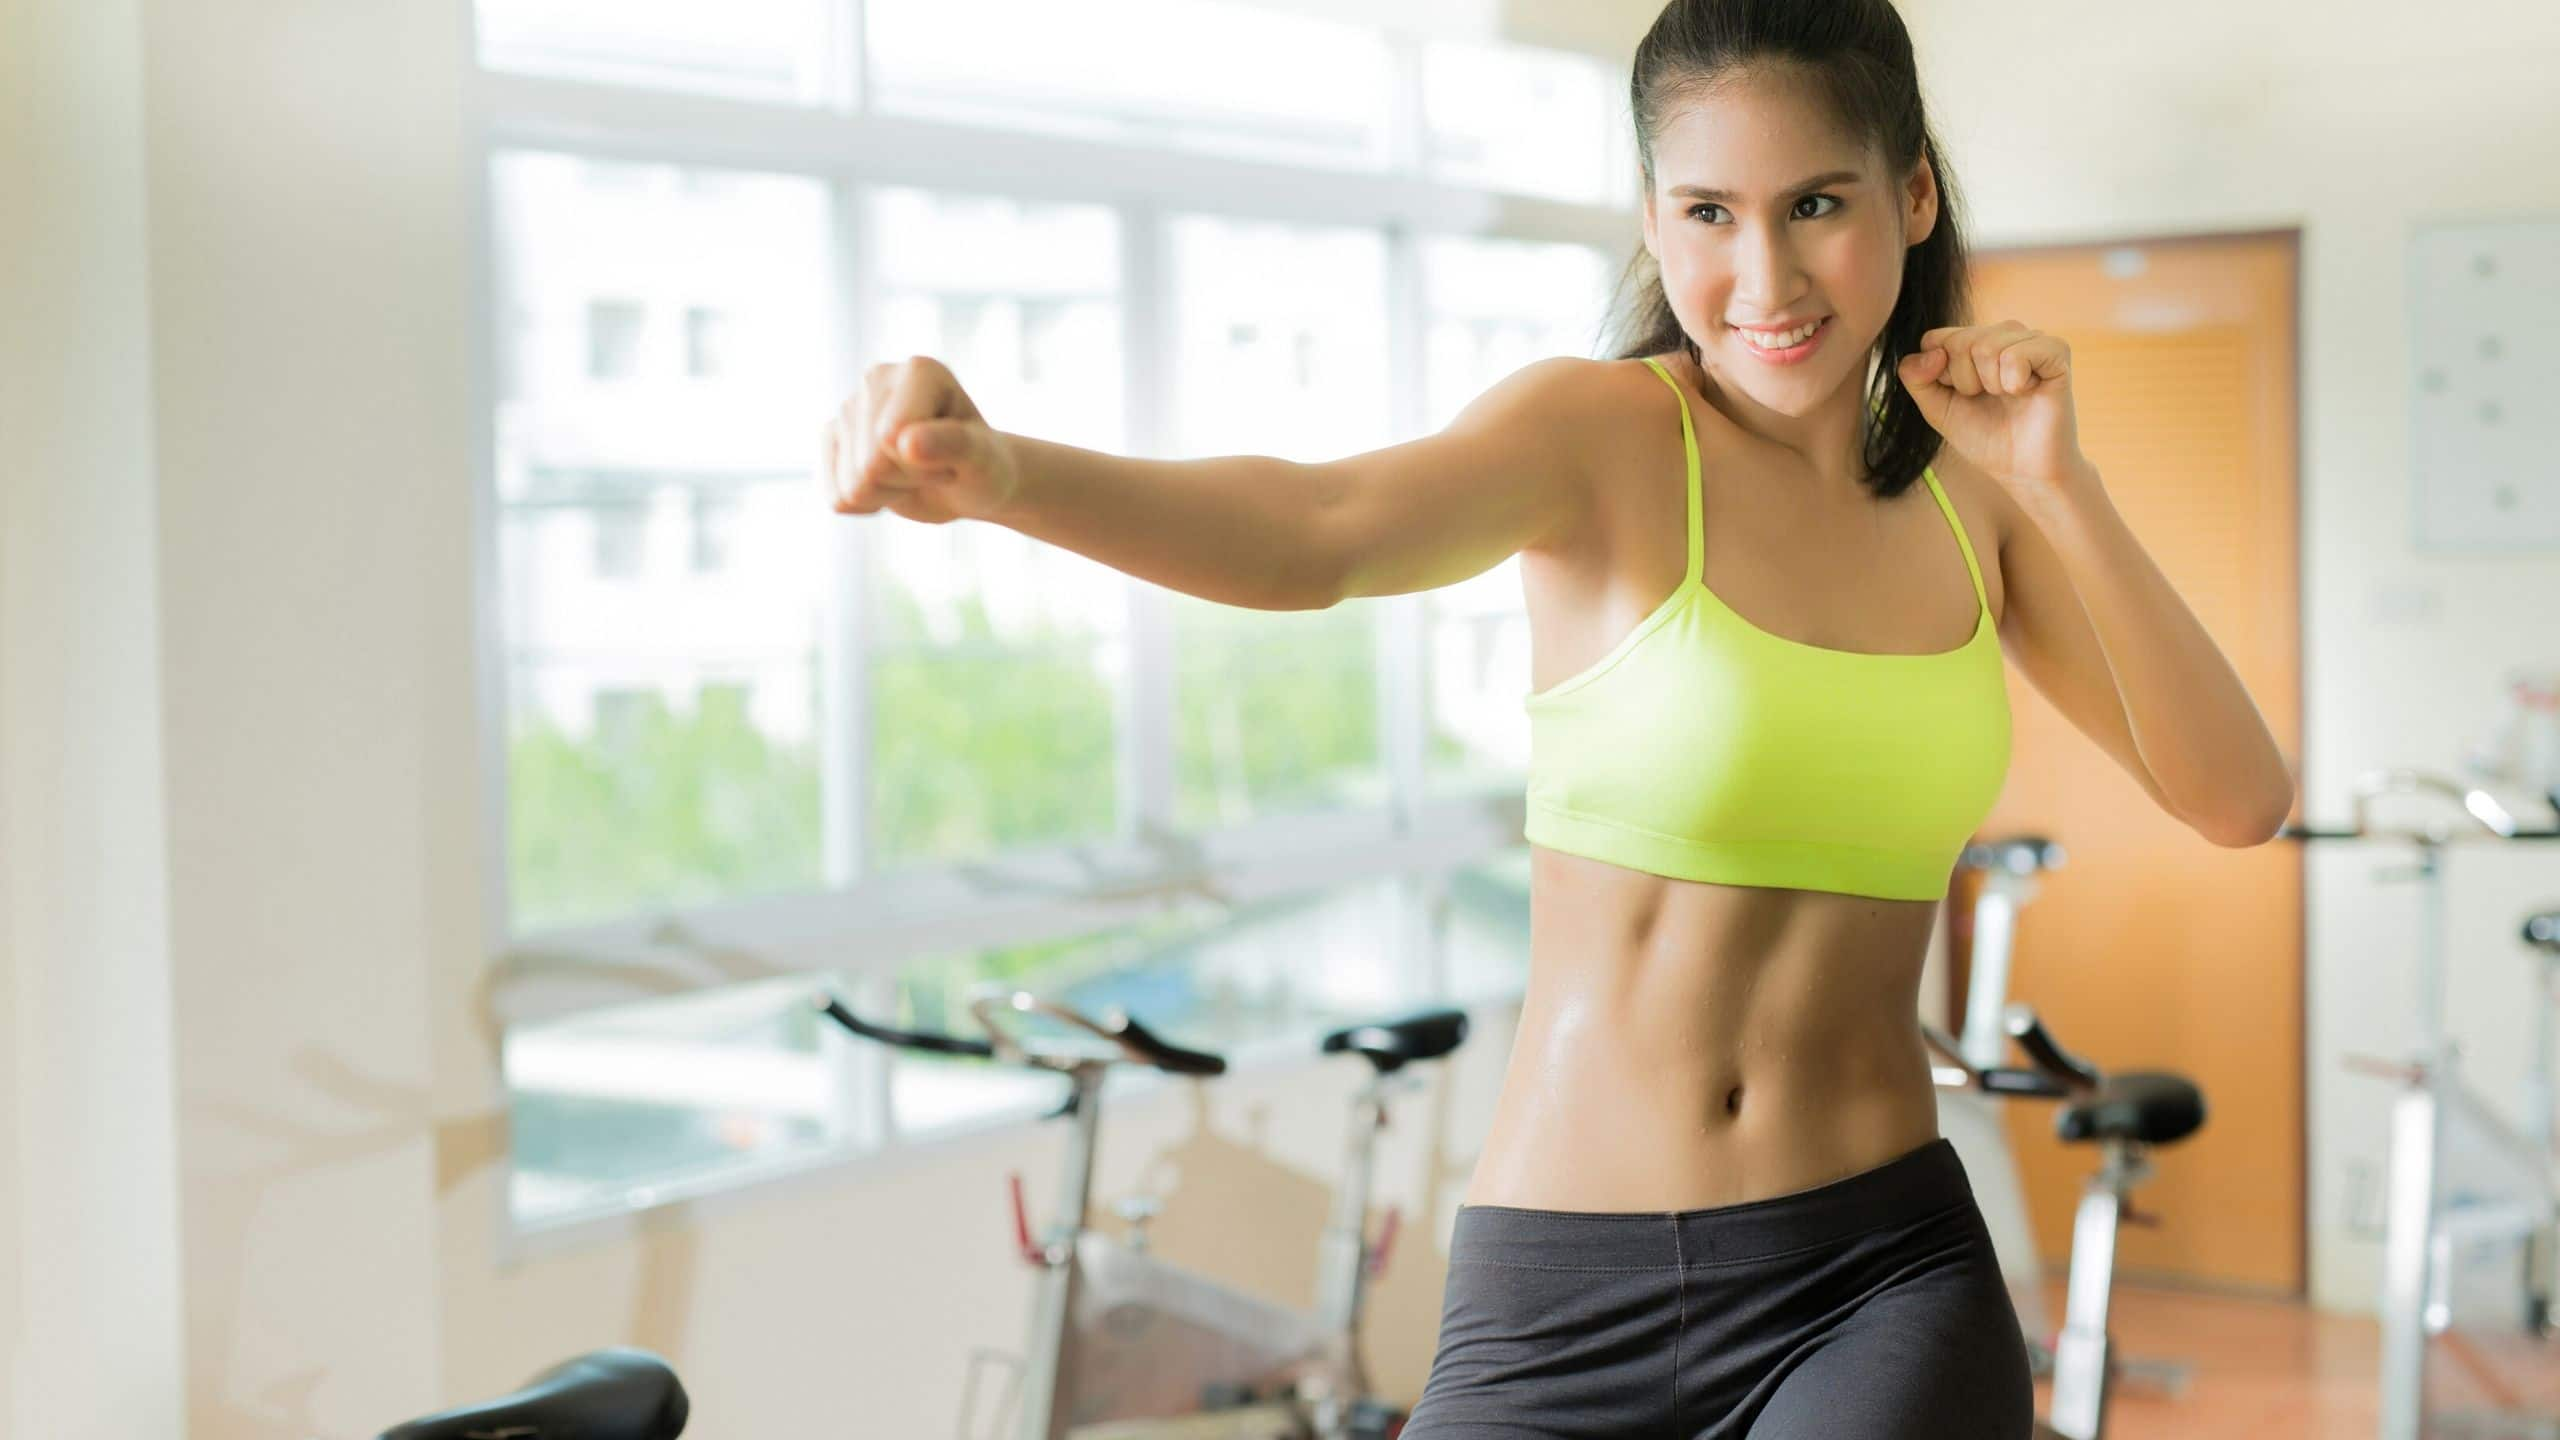 Read more about the article Lose Belly Fat: Simple But Effective Tips to burn visceral fat